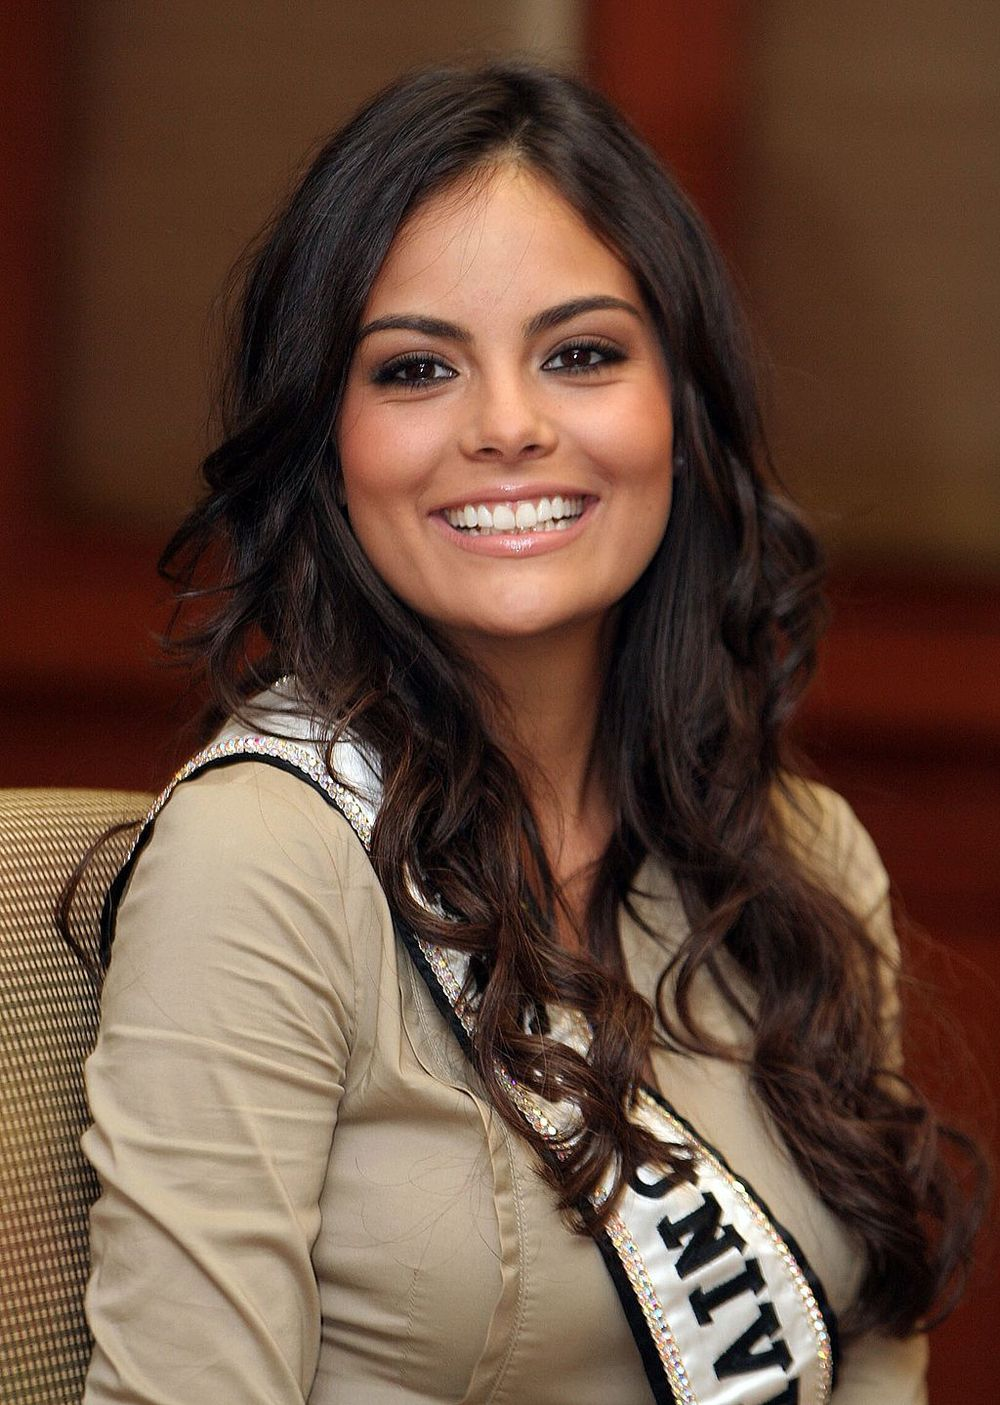 Ximena Navarette, Miss Universe 2010. She is from Guadalajara, Mexico. Source:  Flickr / Abhisit Vejjajiva, available here.